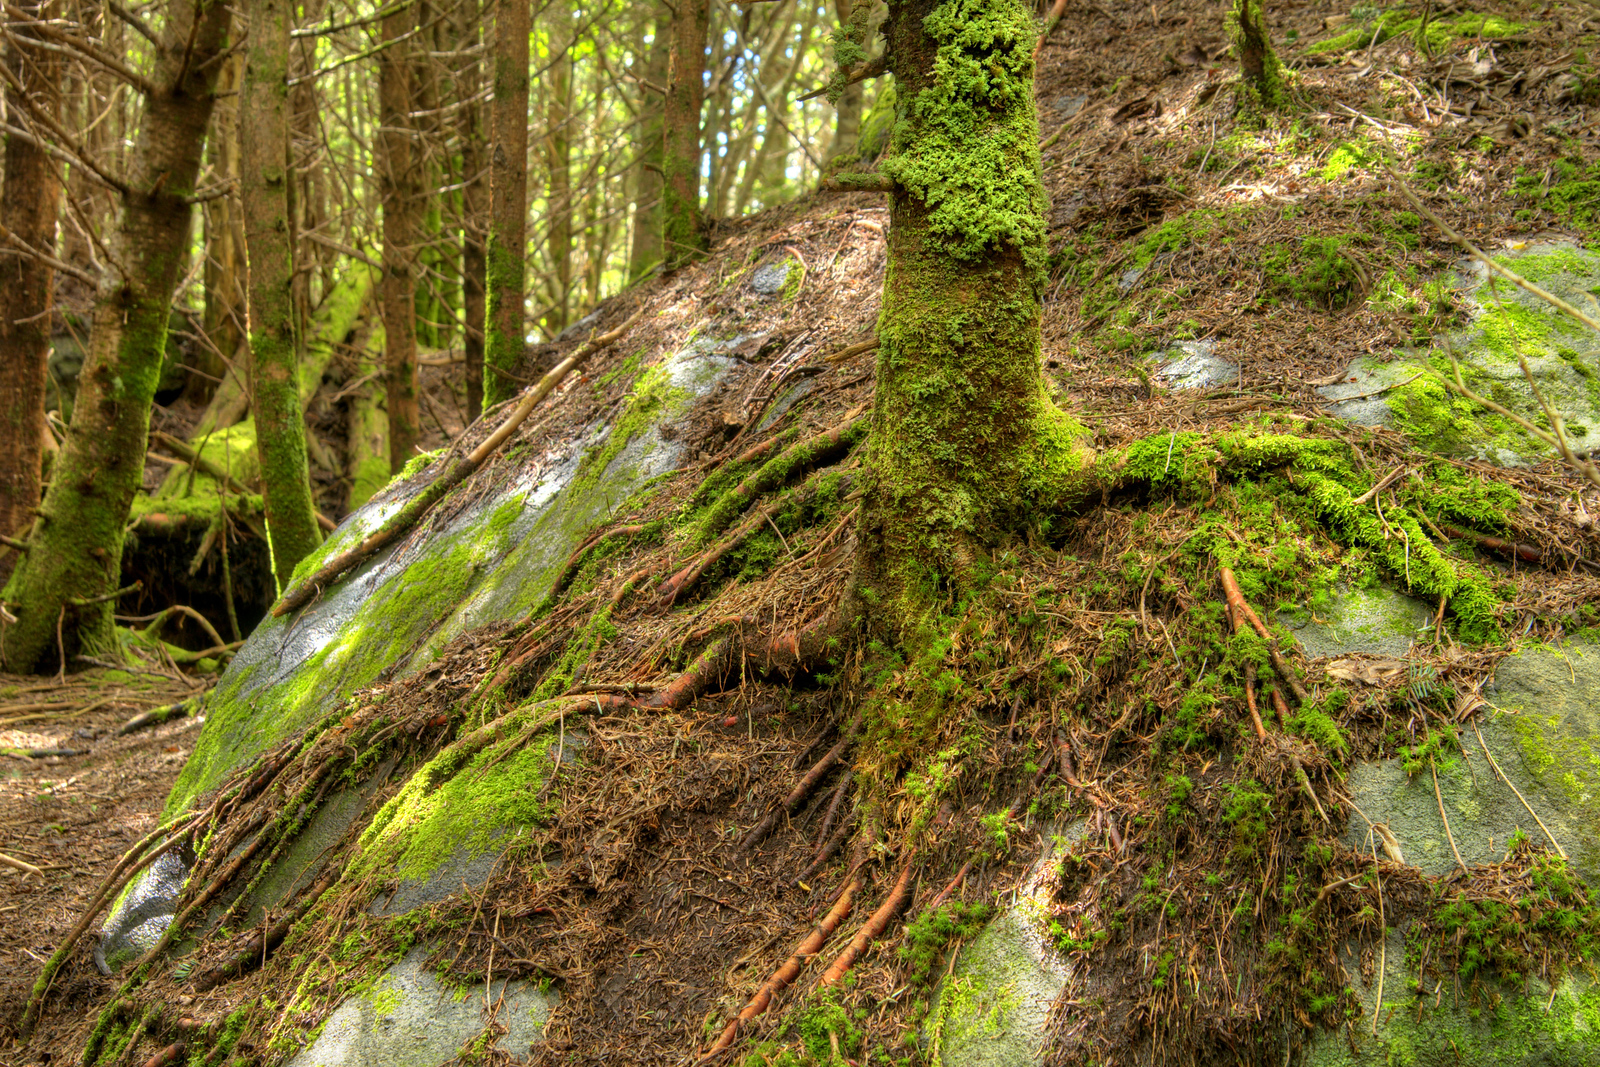 With very little soil, a tree has grown atop a large boulder along the Cloudland Trail leading to Roan High Bluff on Roan Mountain near the town of Roan Mountain, TN on Sunday, June 14, 2015. Copyright 2015 Jason Barnette Roan Mountain straddles the border between the towns of Roan Mountain, Tennessee and Bakersville, North Carolina. The top of the mountain is known for having the largest natural rhododendron gardens in the country, maintained and operated by the National Forest Service. The recreation area includes hiking trails, the gardens, scenic overlooks, and the Appalachian Trail.